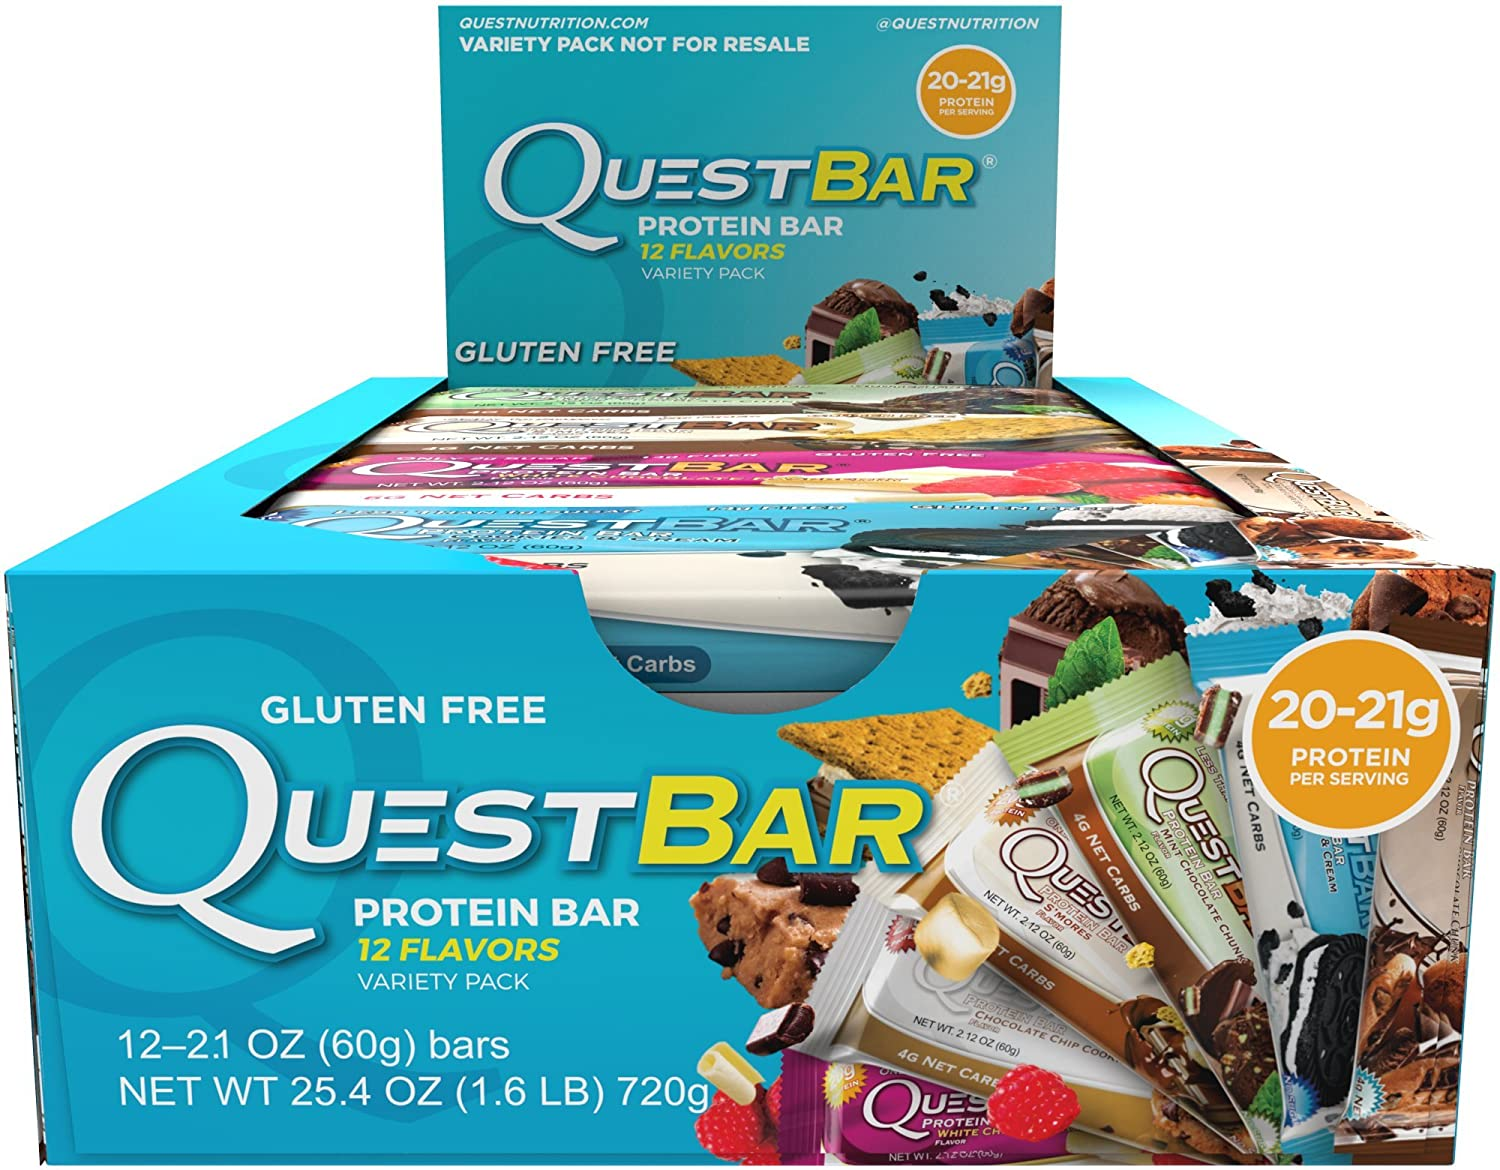 Amazon.com: Quest Nutrition Protein Bar, Best Seller Variety Pack, 12  Flavors, 20 21g Protein, 4 7g Net Carbs, 170 200 Cals, High Protein Bars,  ...